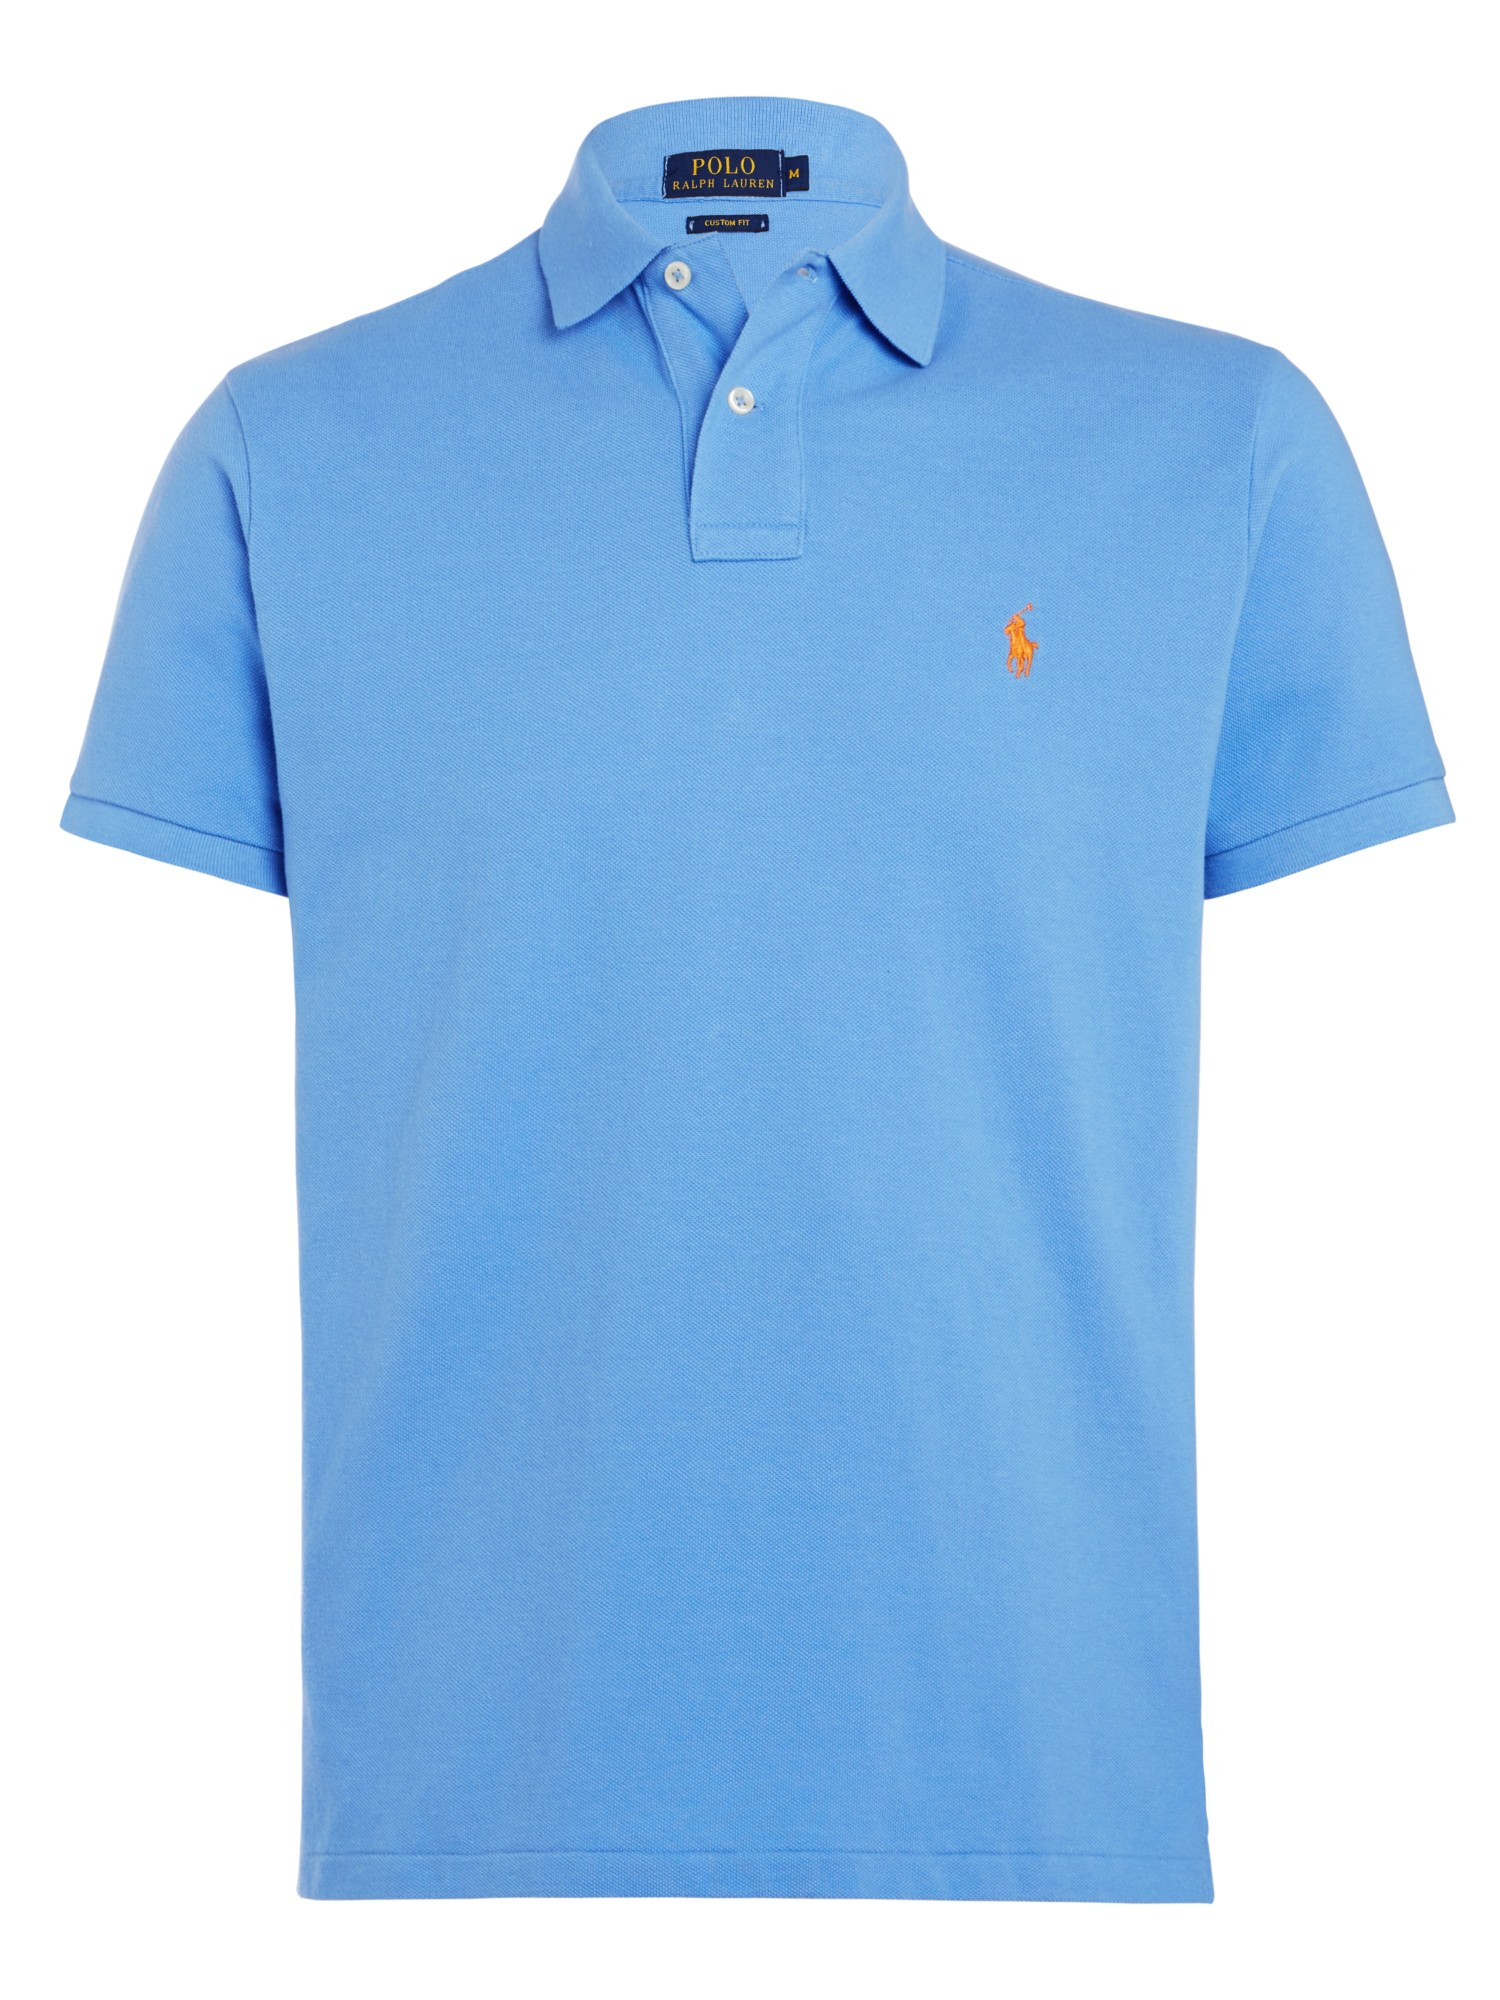 Lyst polo ralph lauren custom fit polo shirt in blue for men for Polo custom fit t shirts